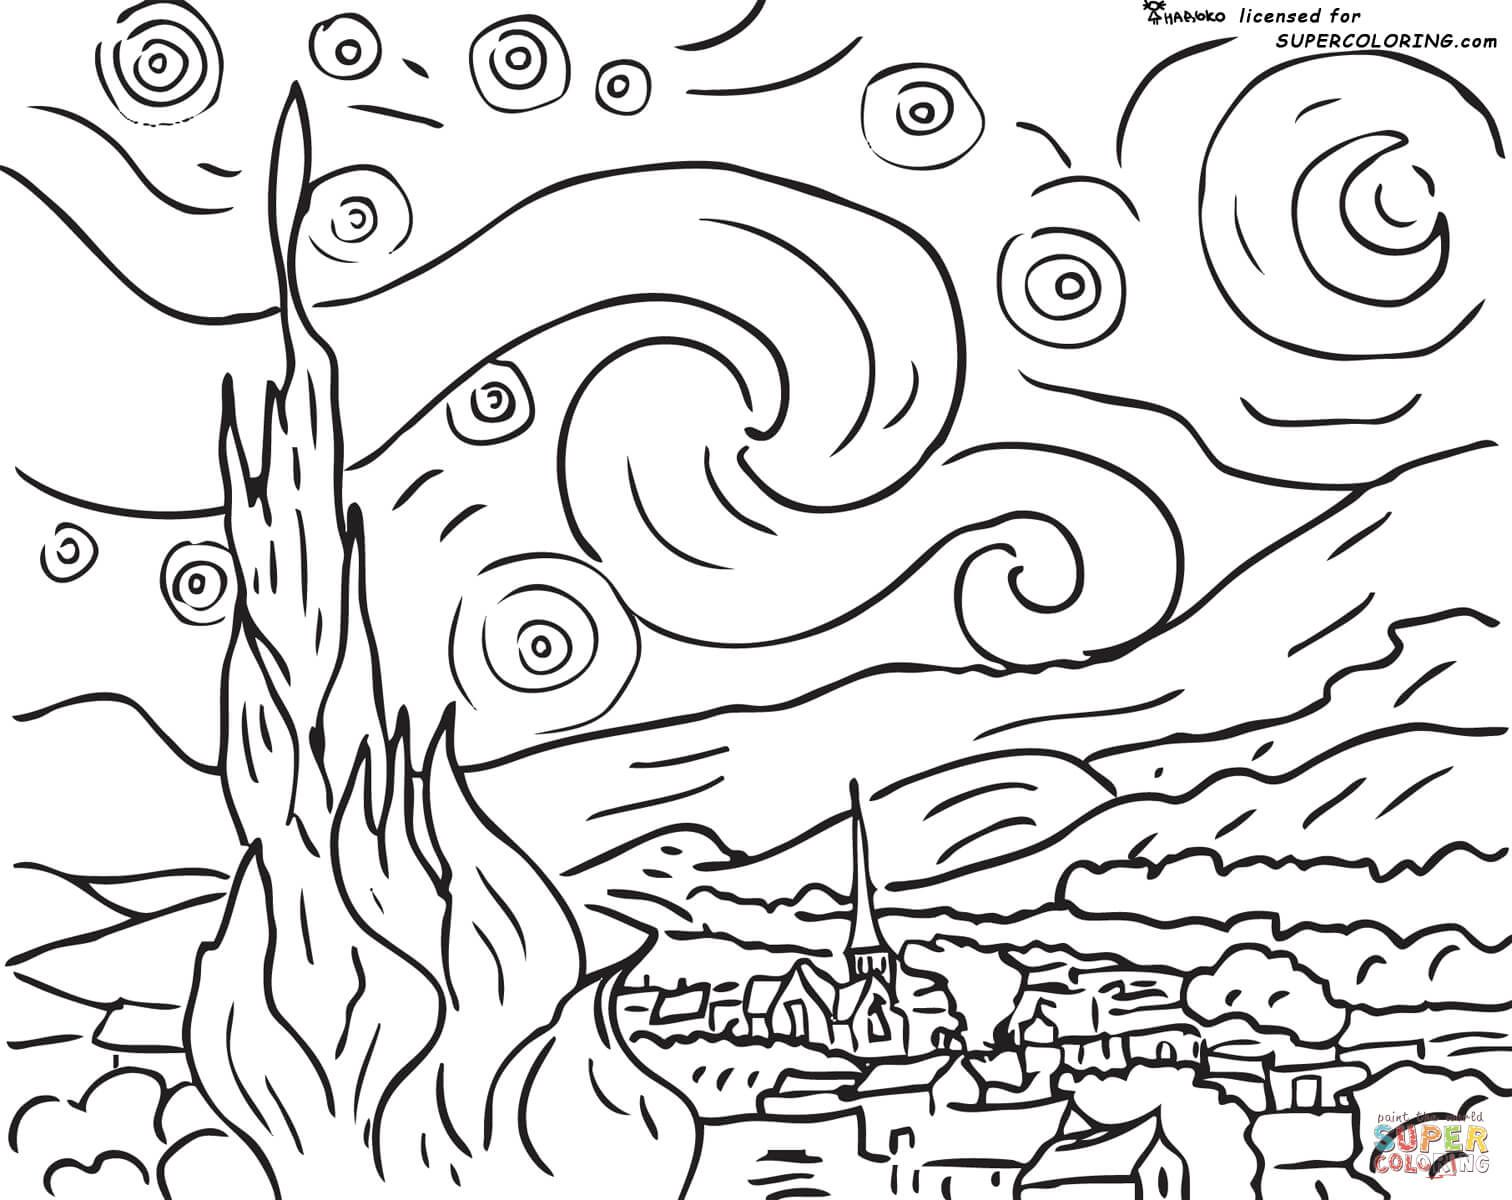 Colorings Co Van Gogh Coloring Pages Colorings